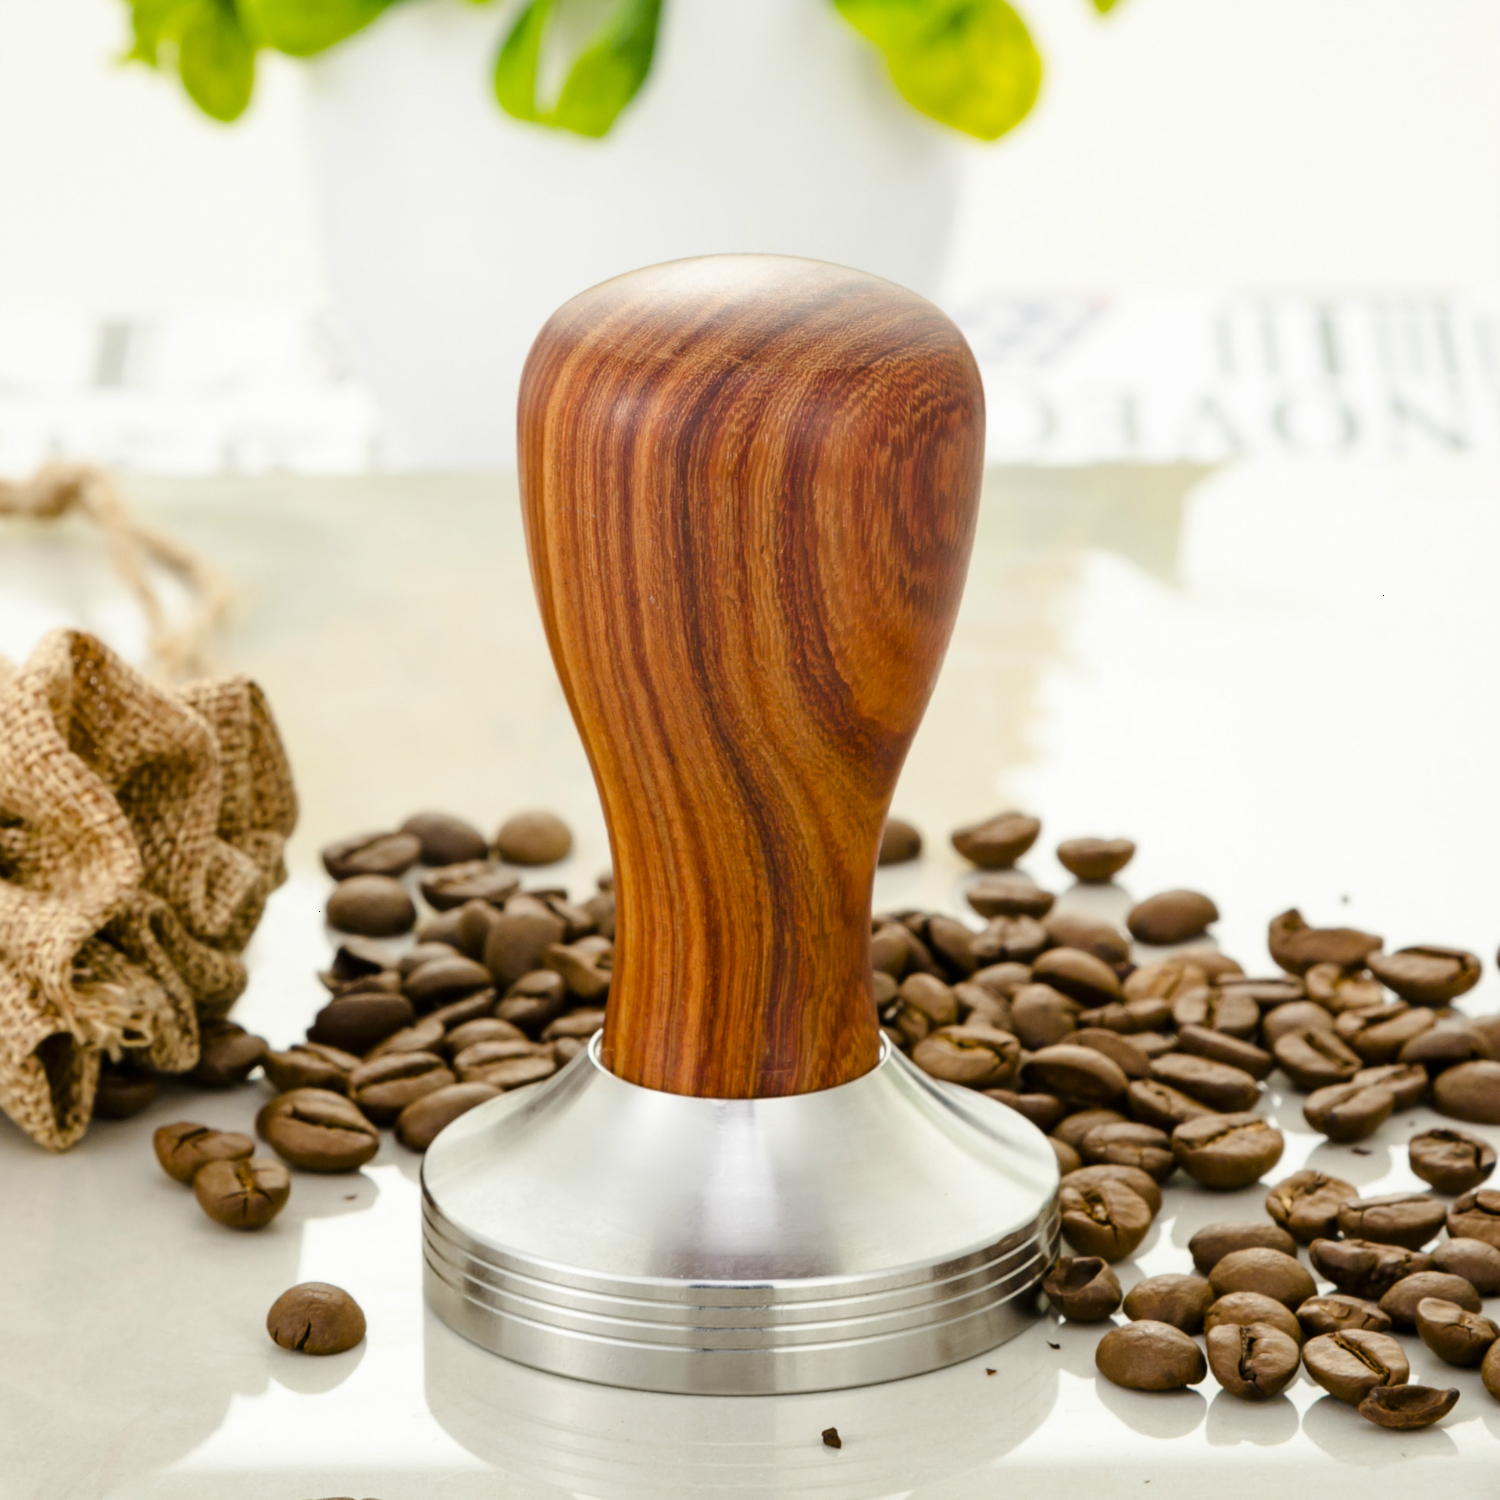 Drop Shipping Food Grade 51mm Espresso Tamper Coffee Pull Cup Press Flat Base Barista Accessories